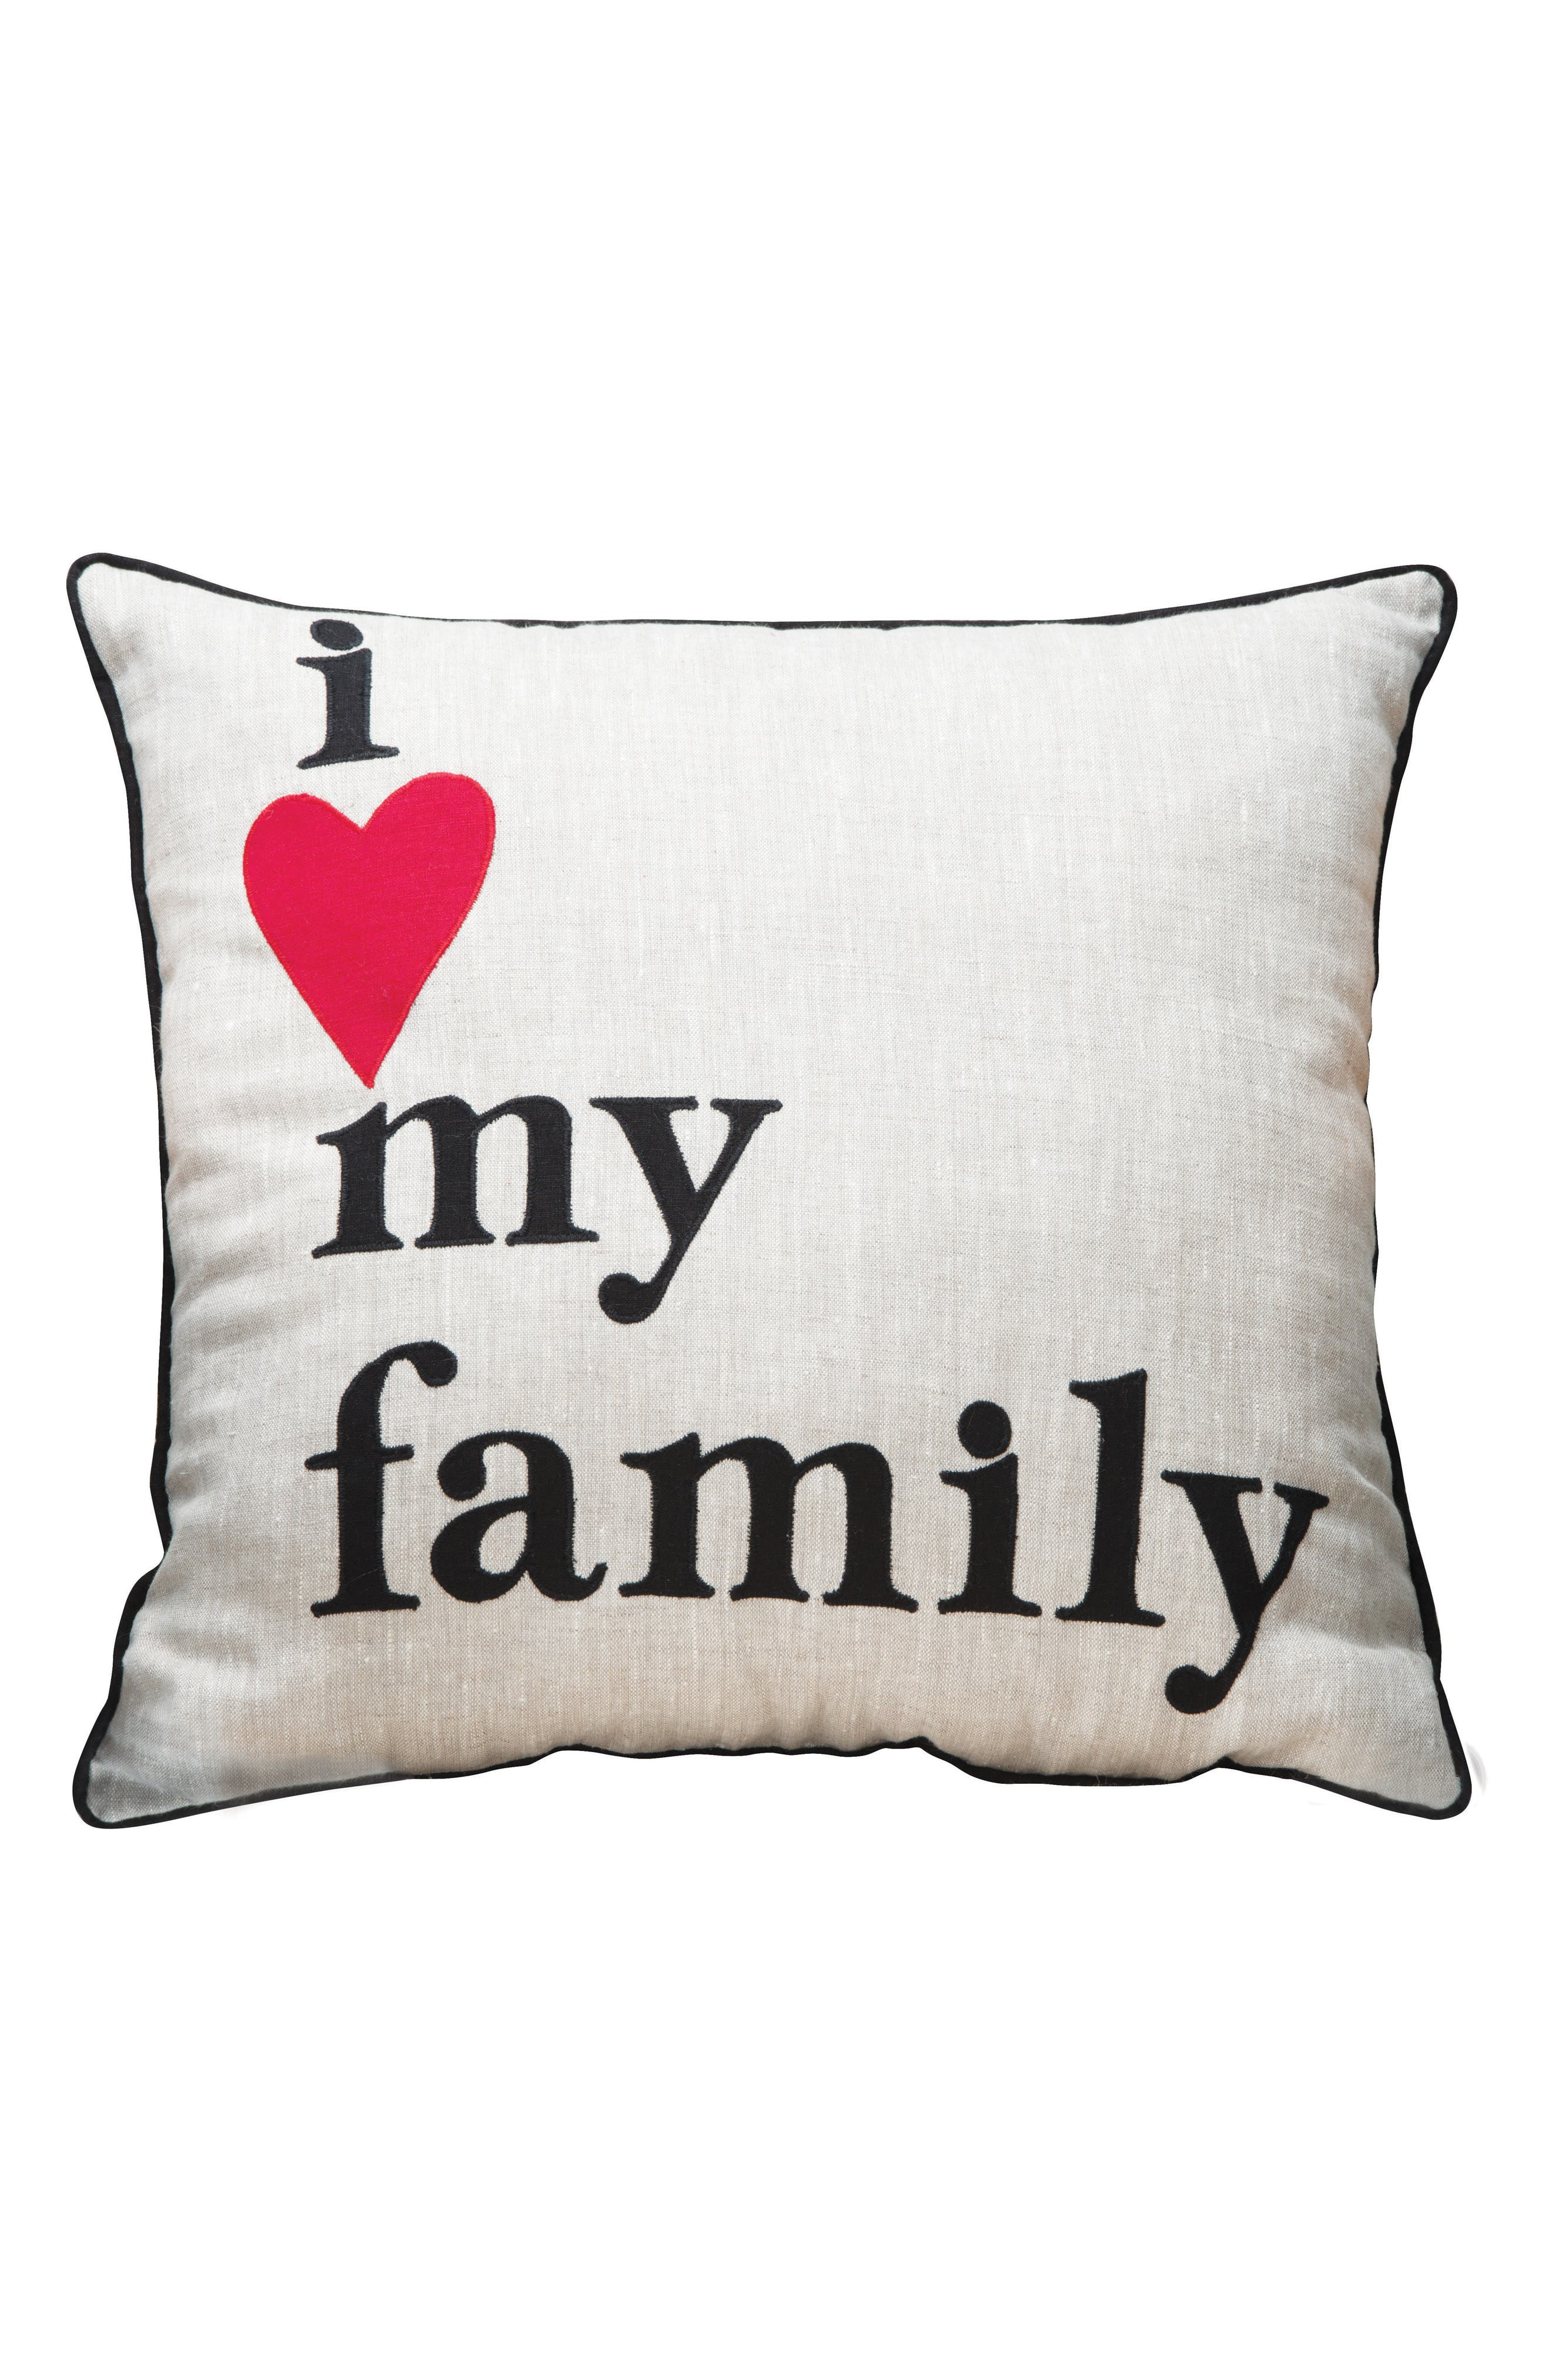 I Love My Family Accent Pillow,                             Main thumbnail 1, color,                             Cream/ Black/ Red